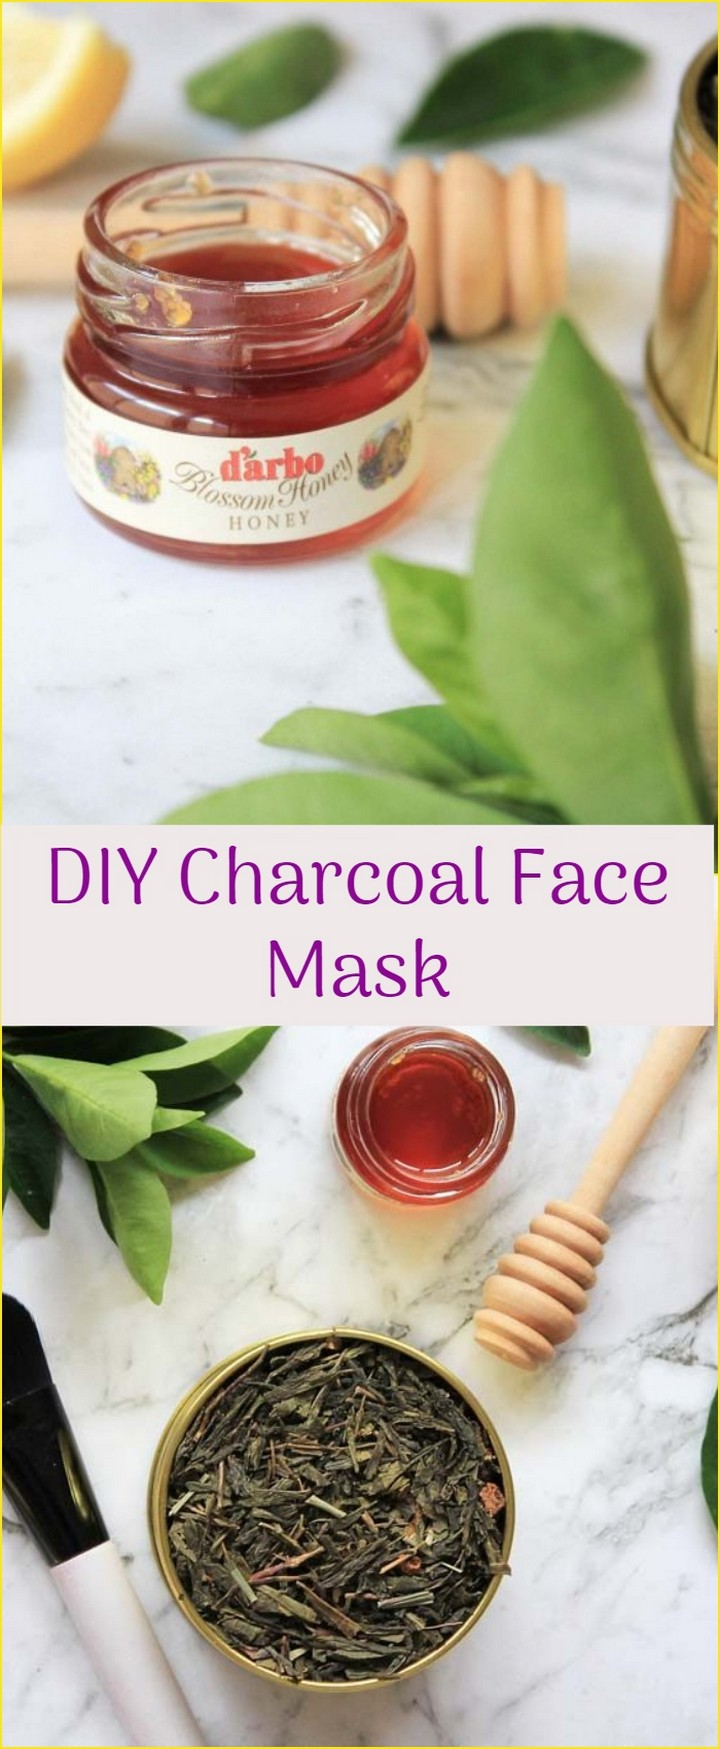 My Go To DIY Face Mask for Nights In 1